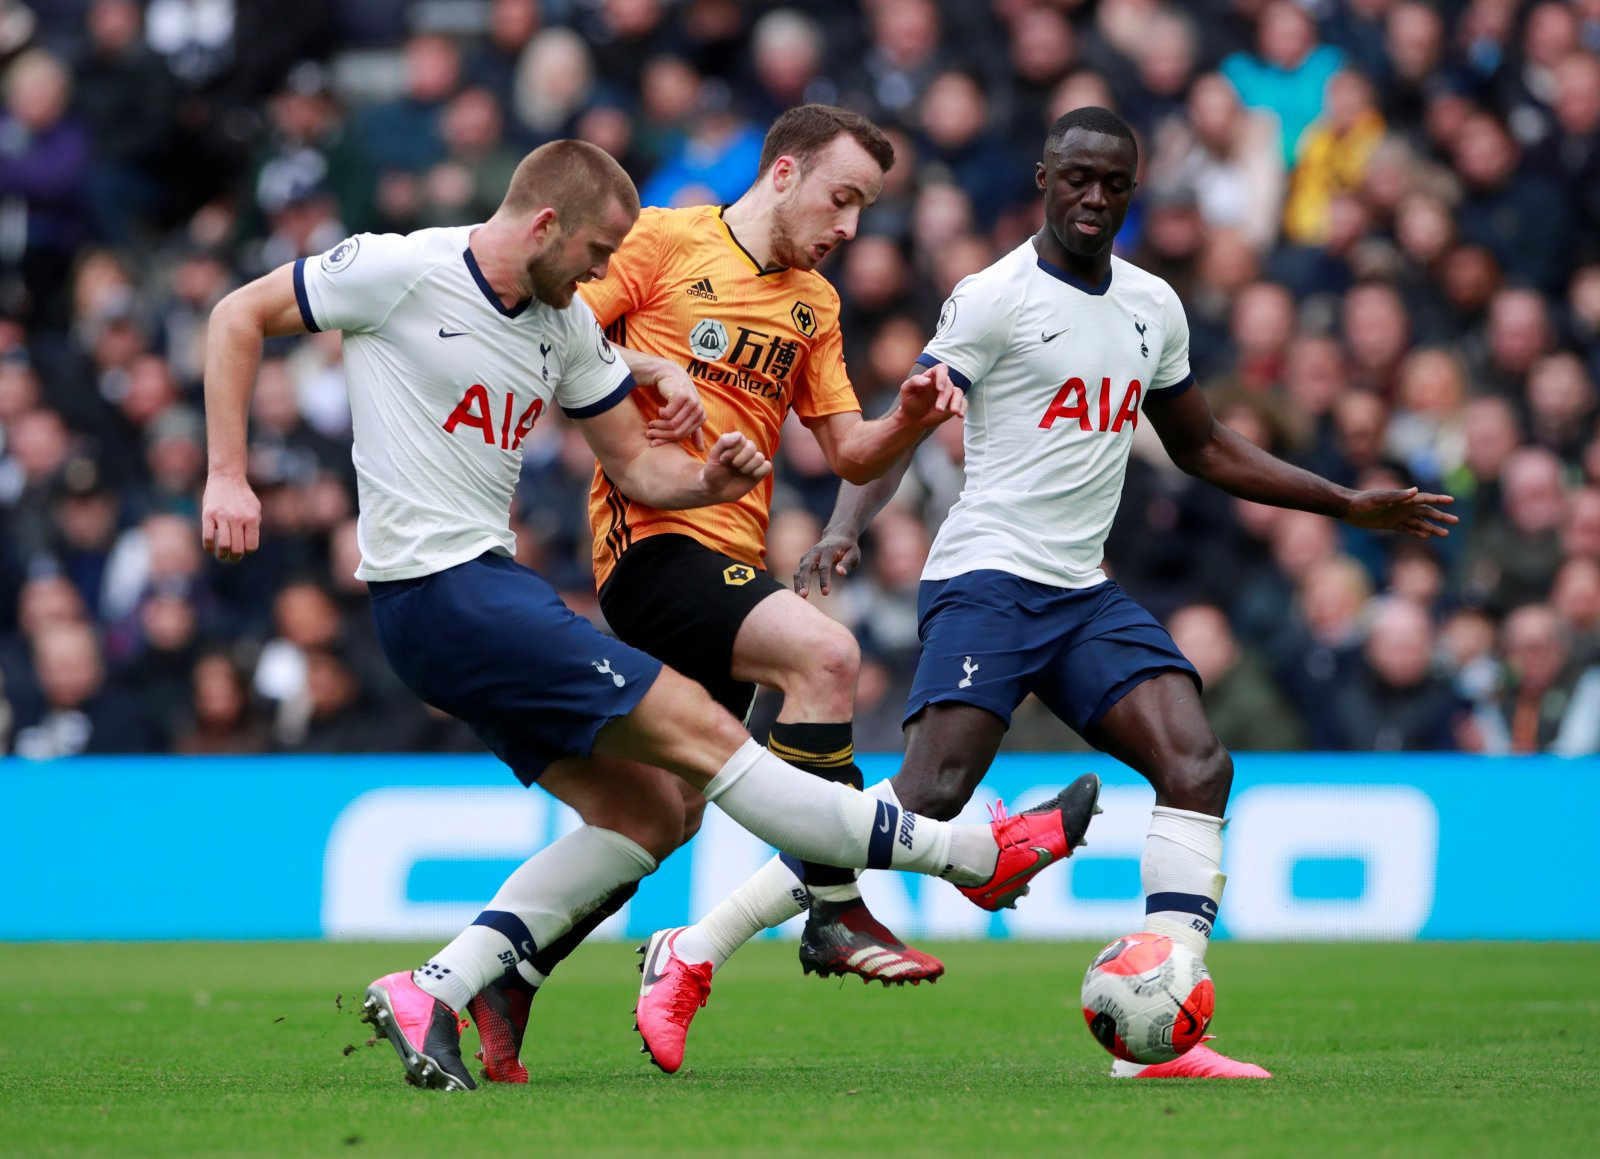 Tottenham will need to improve if they are serious about challenging for titles